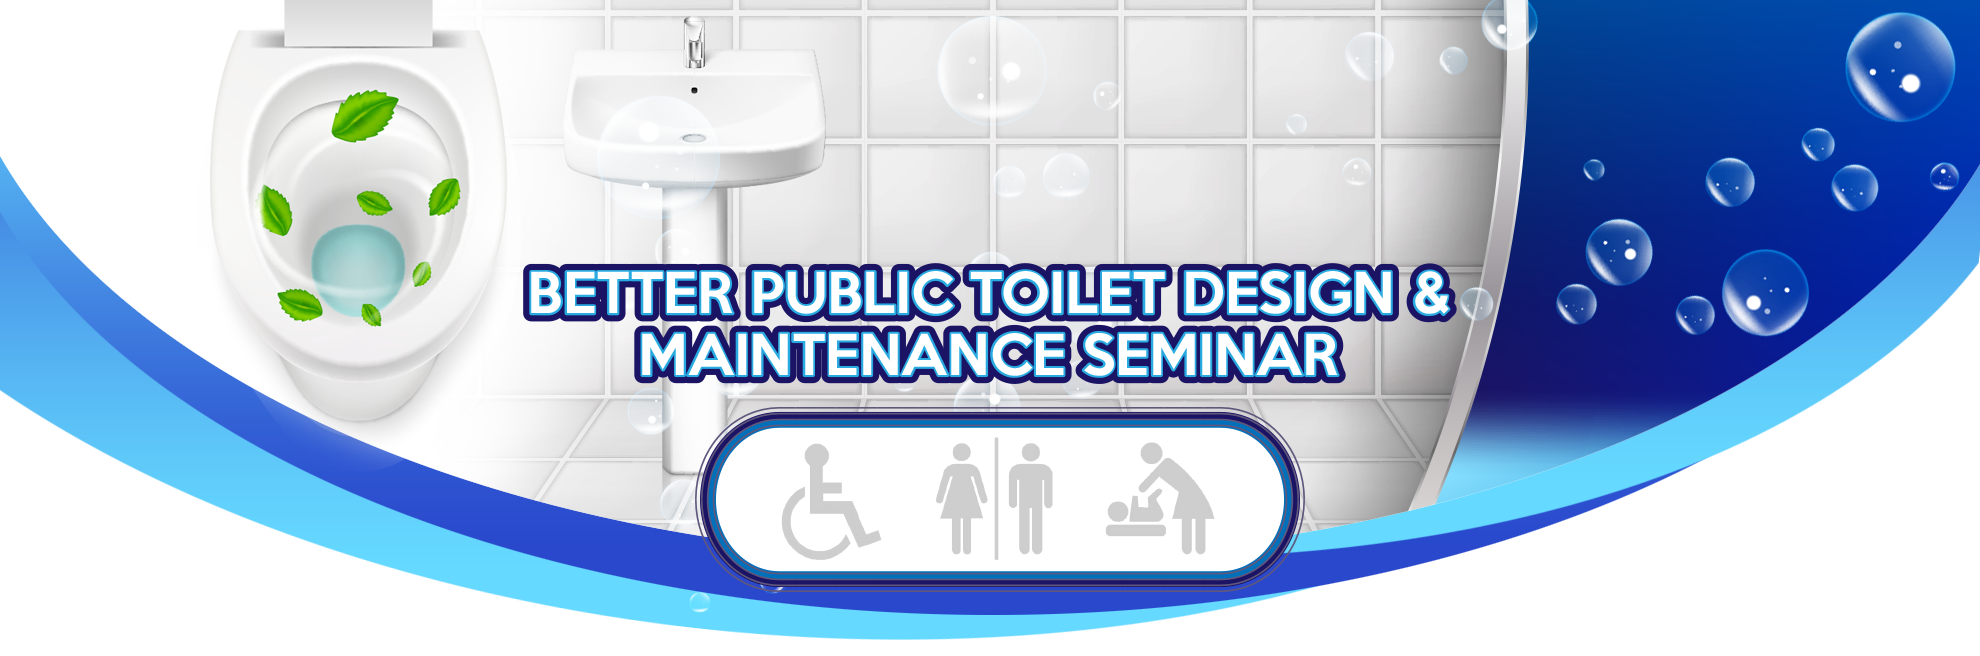 , Better Public Toilet Design & Maintenance Seminar